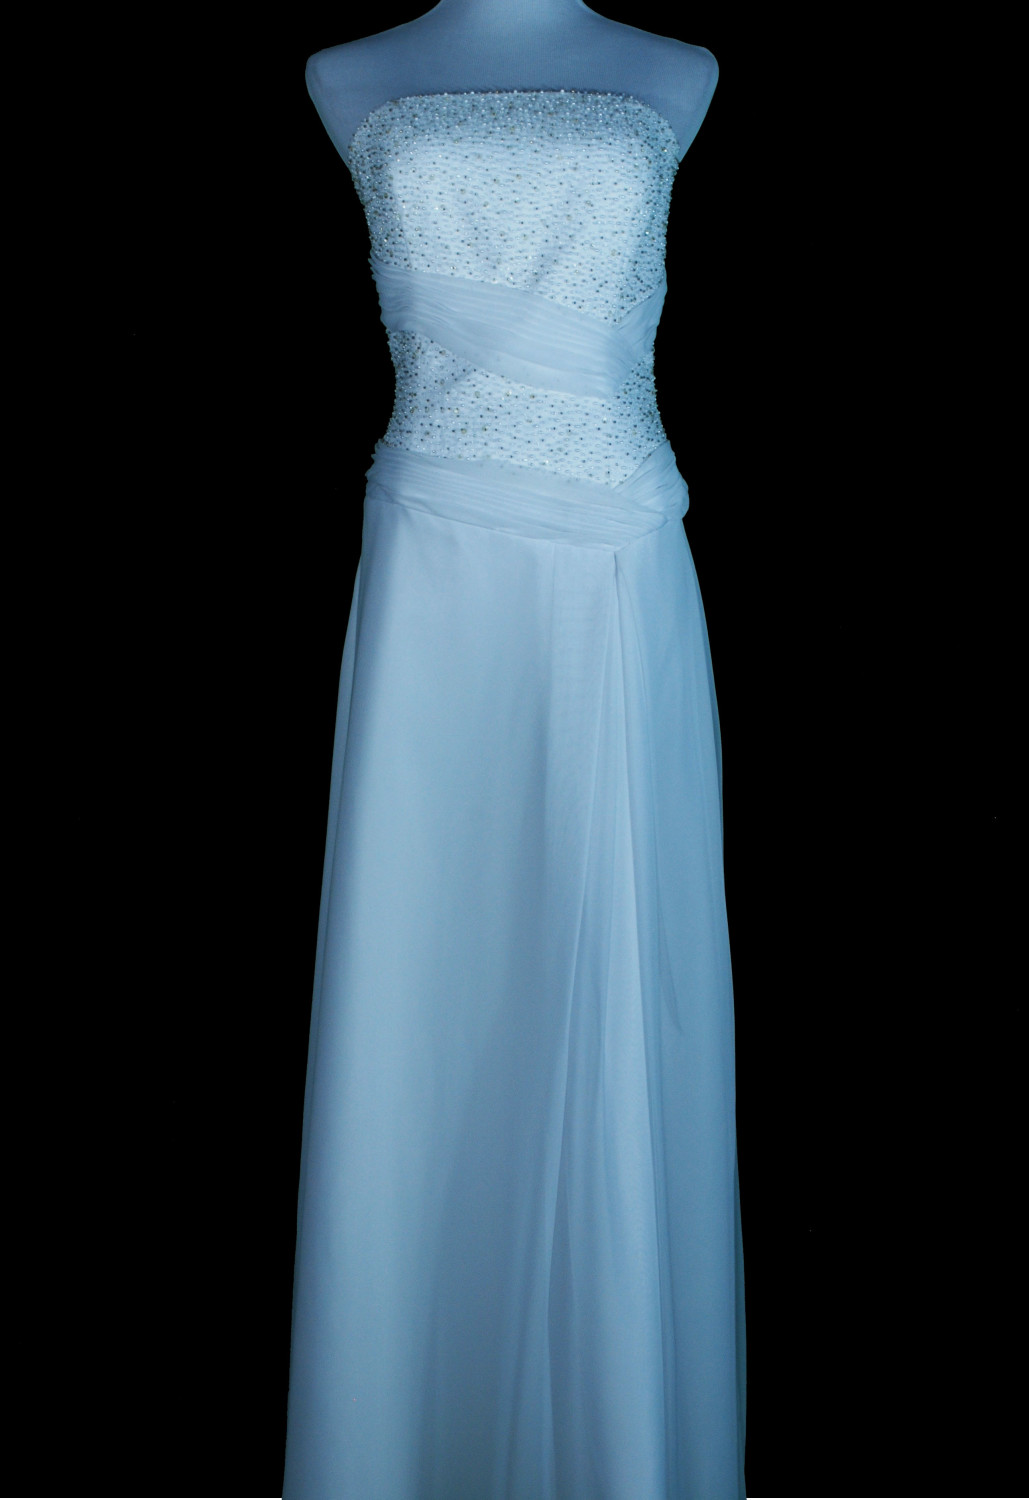 Eden Bridals – Original Retail: $380, CWS: $190